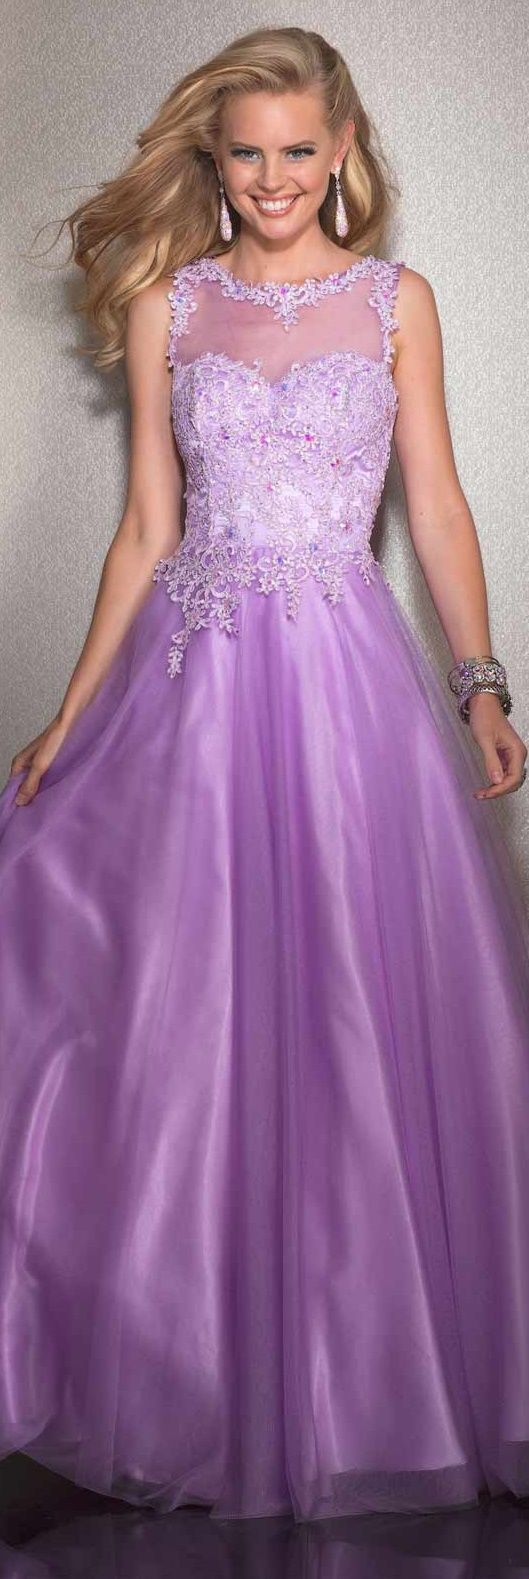 Clarisse Ball Gown